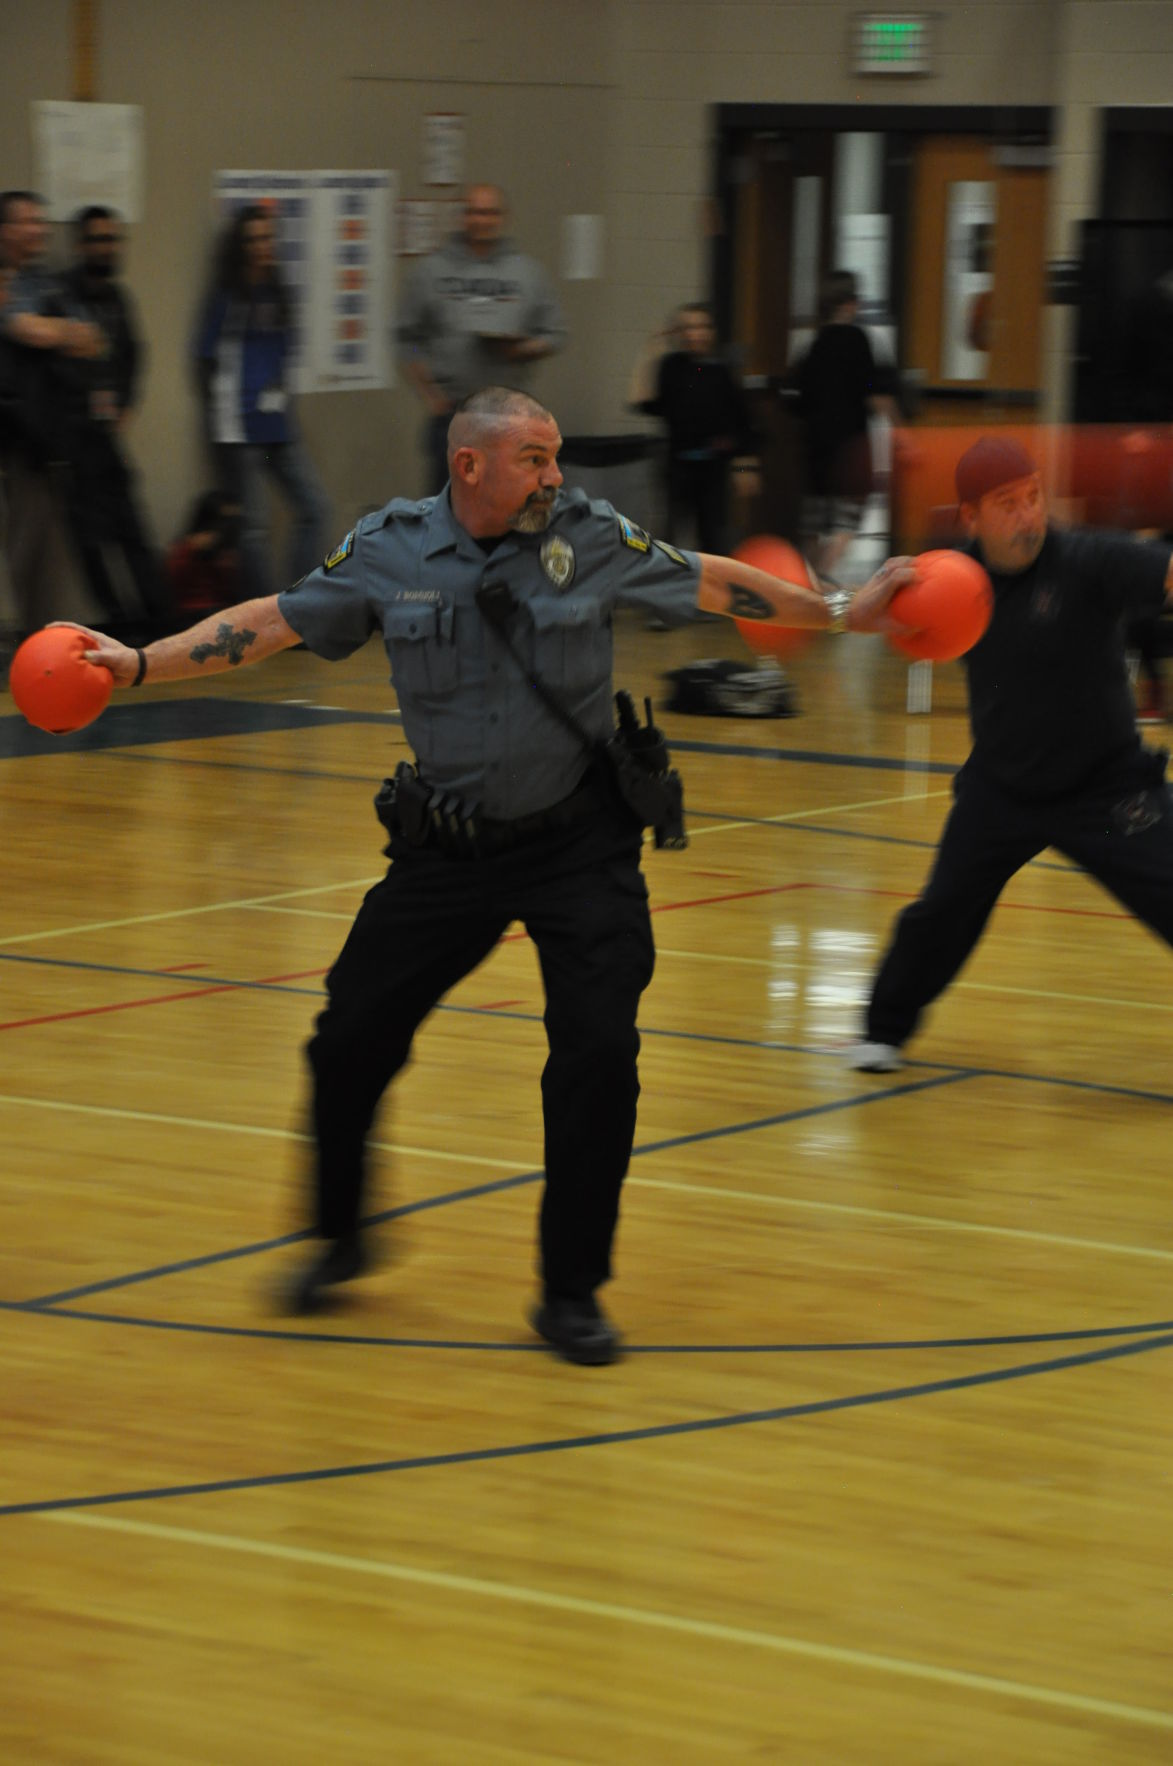 It's fun and games at adults versus Teller teens dodgeball tourney